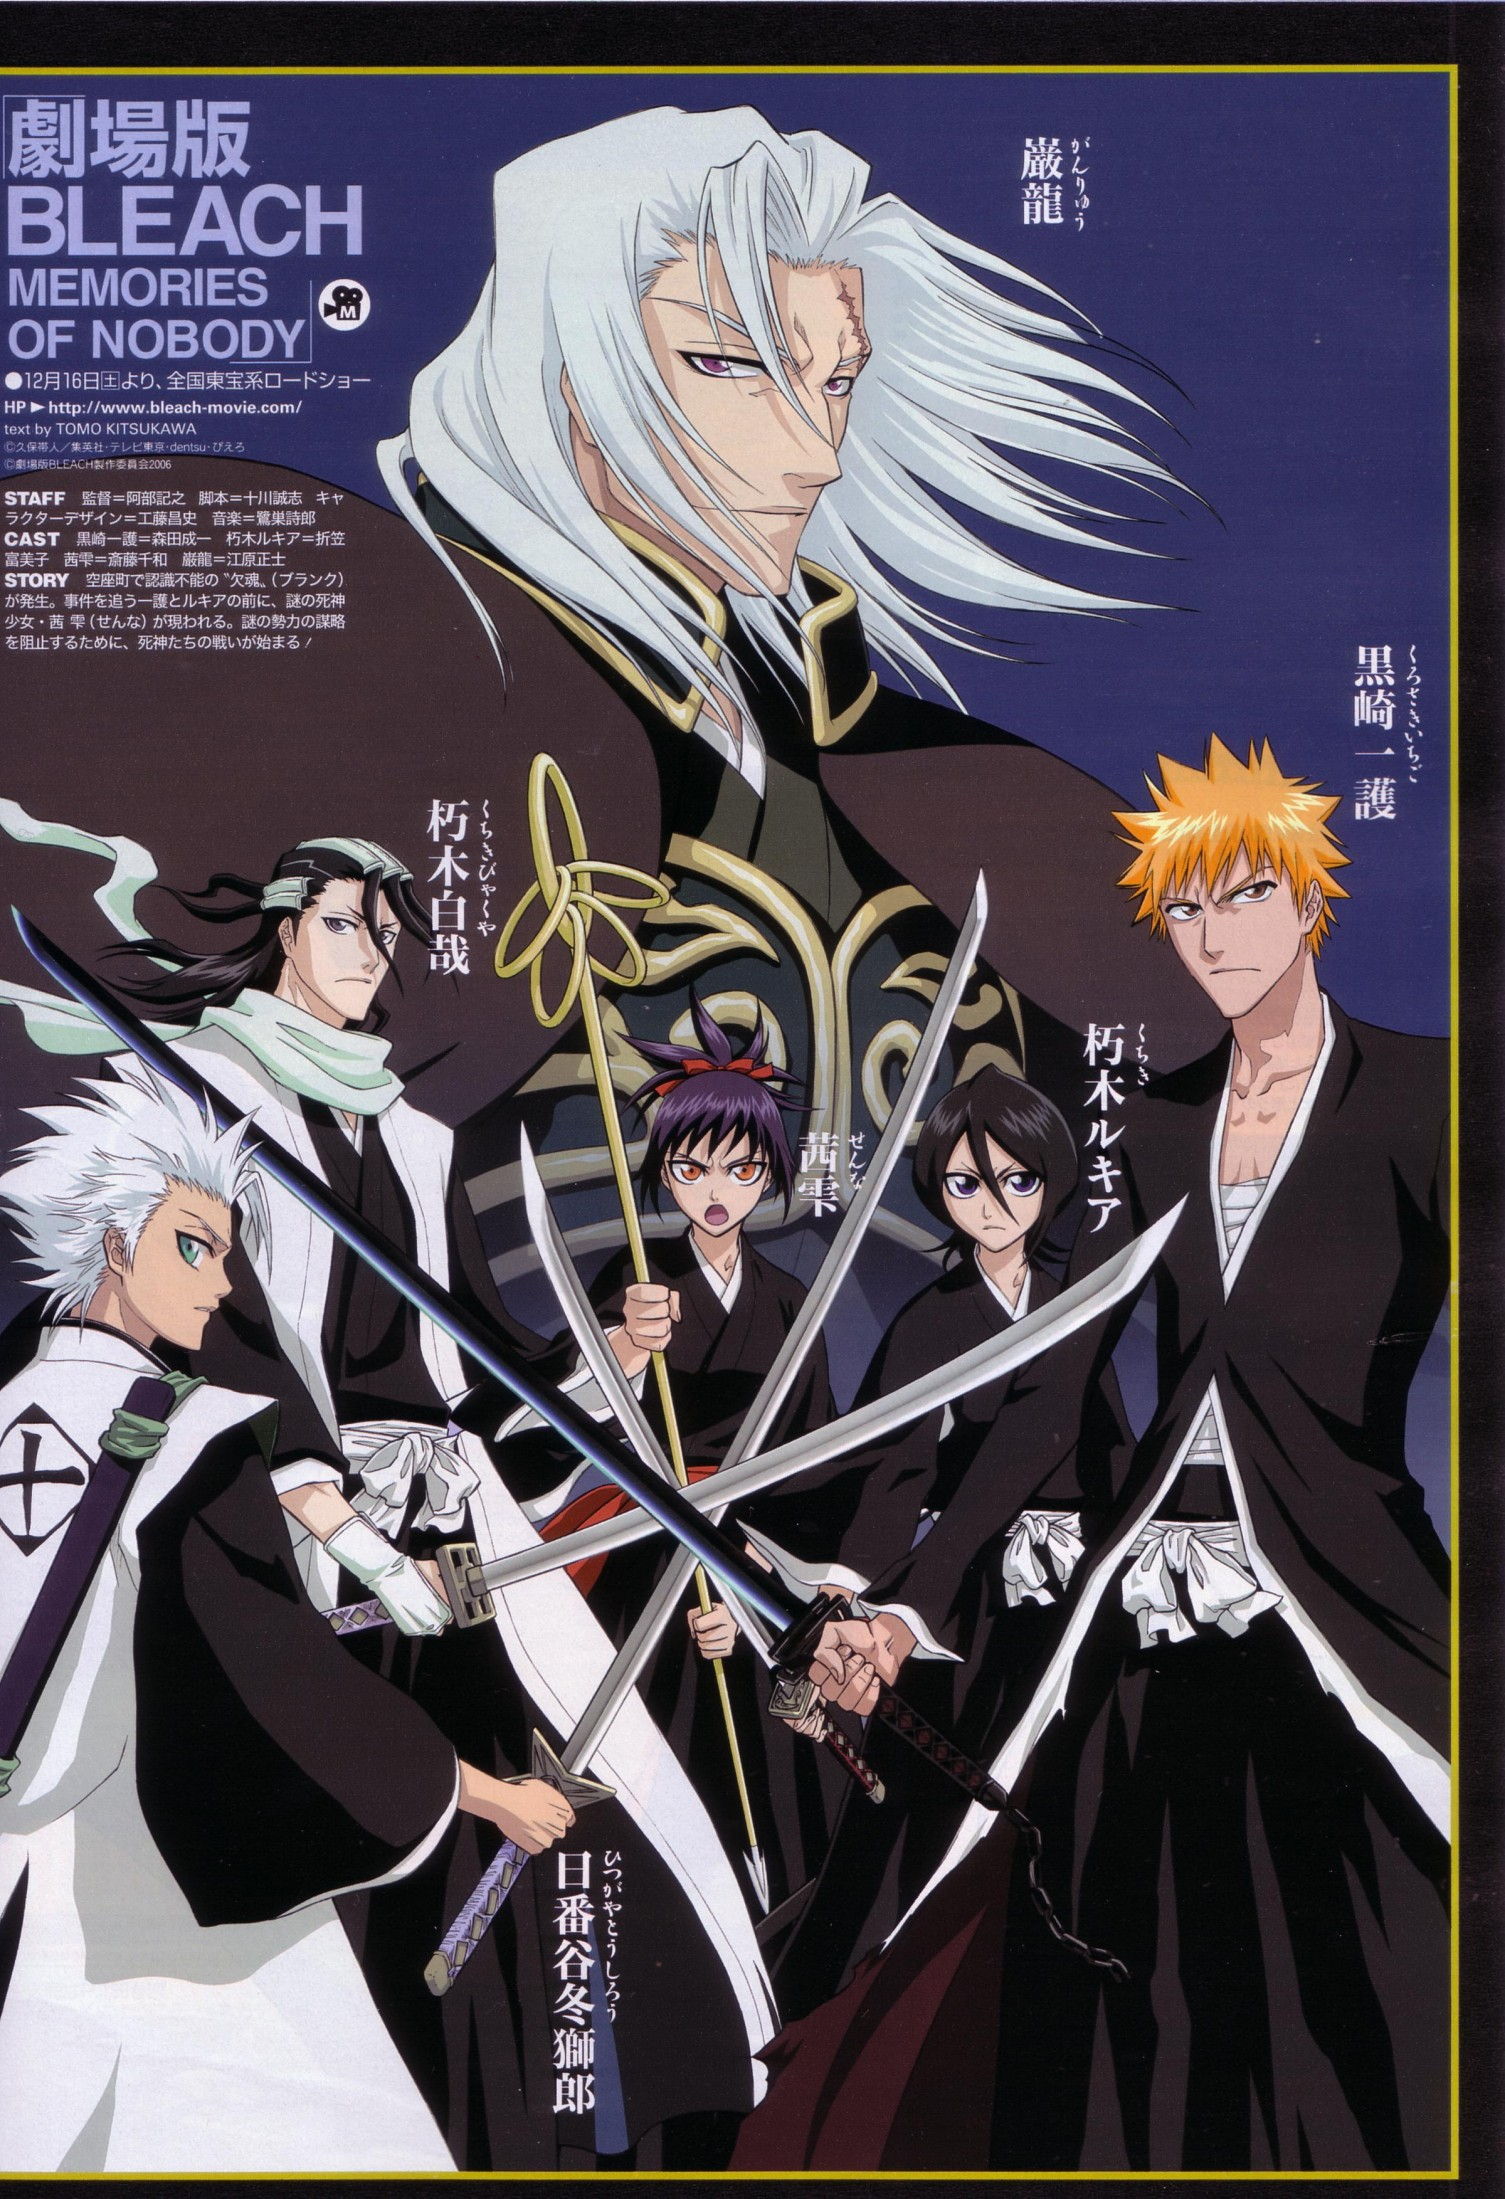 bleach the movie memories of nobody english dub download